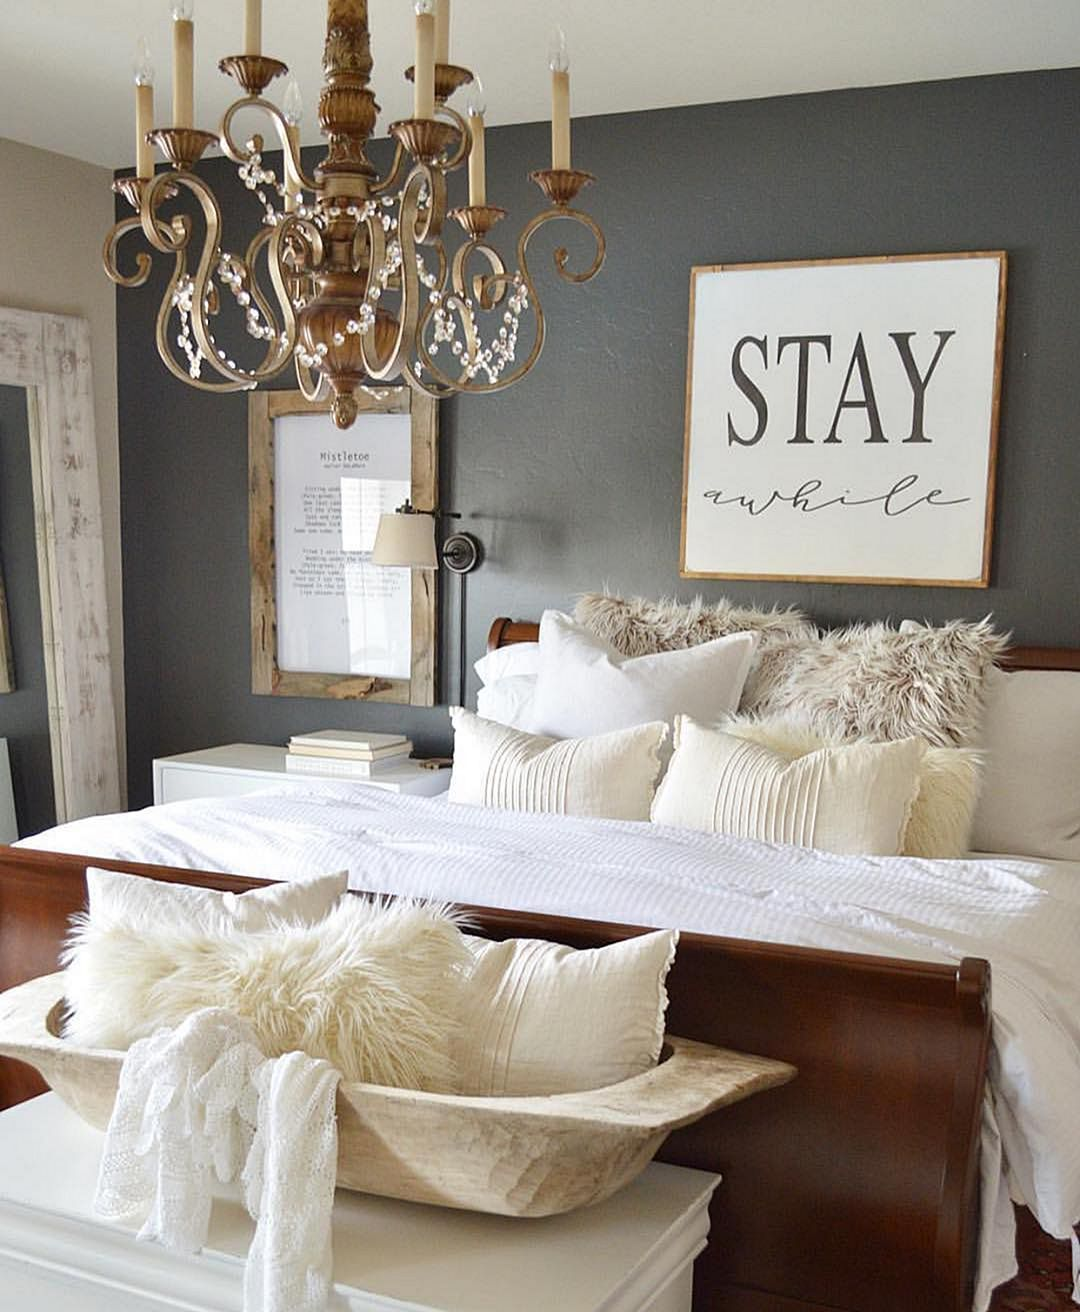 137 diy rustic and romantic master bedroom ideas on a budget http